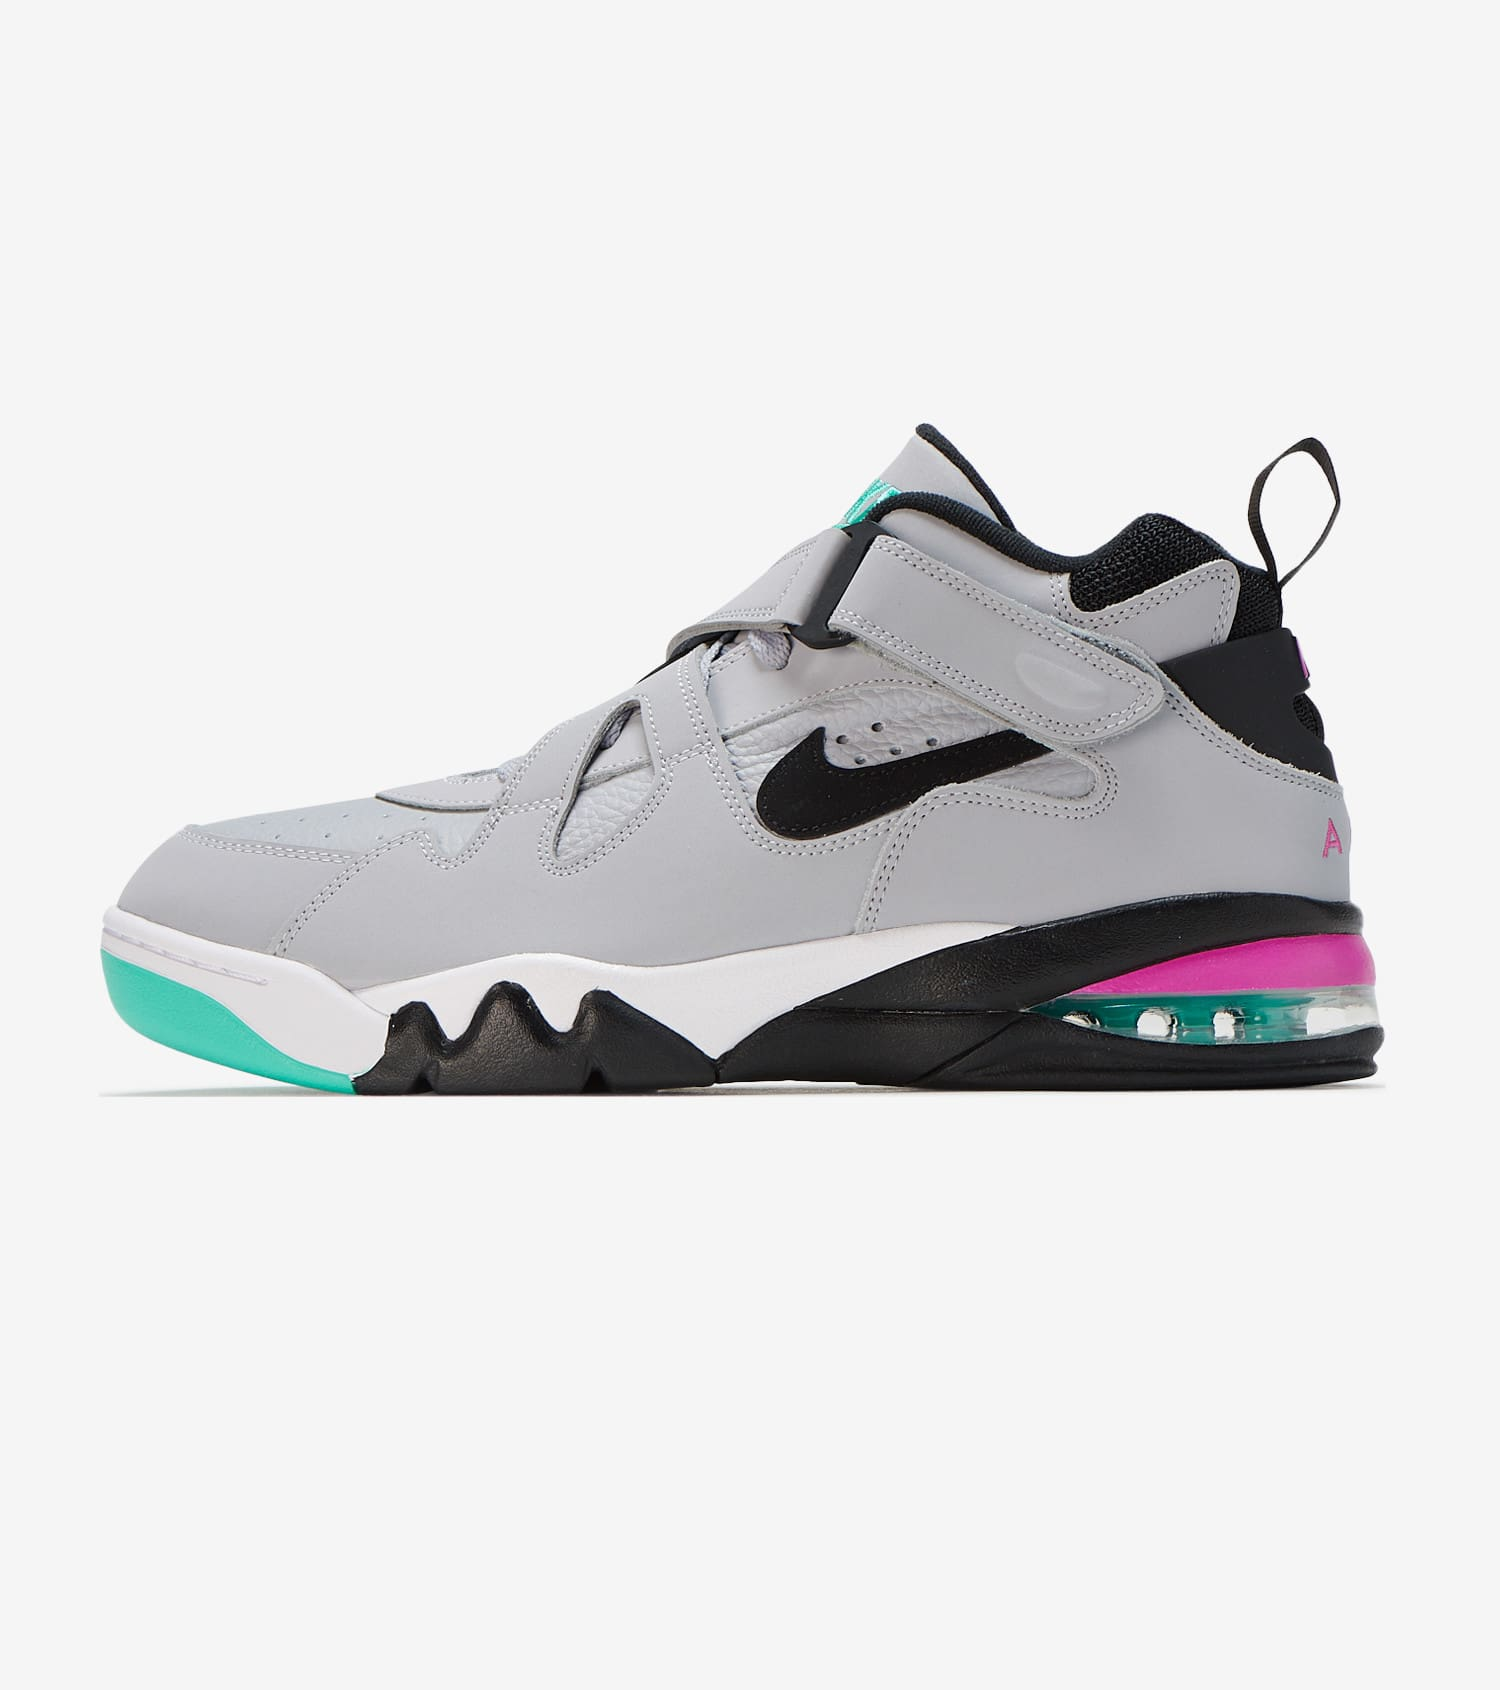 2nike air force max